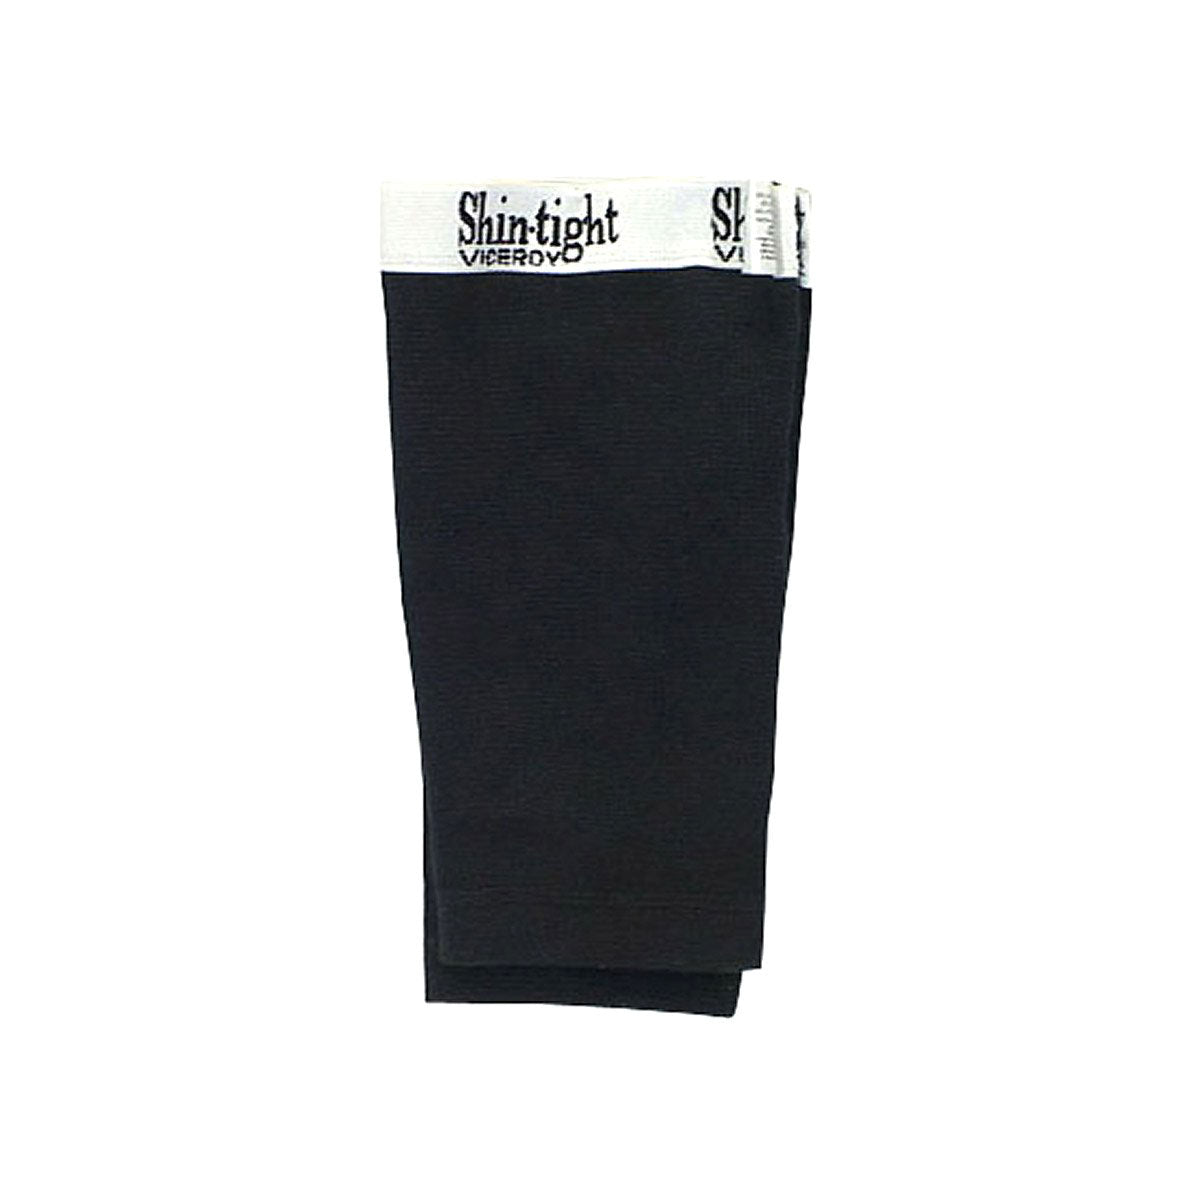 Viceroy Hockey Referee Shin Tights